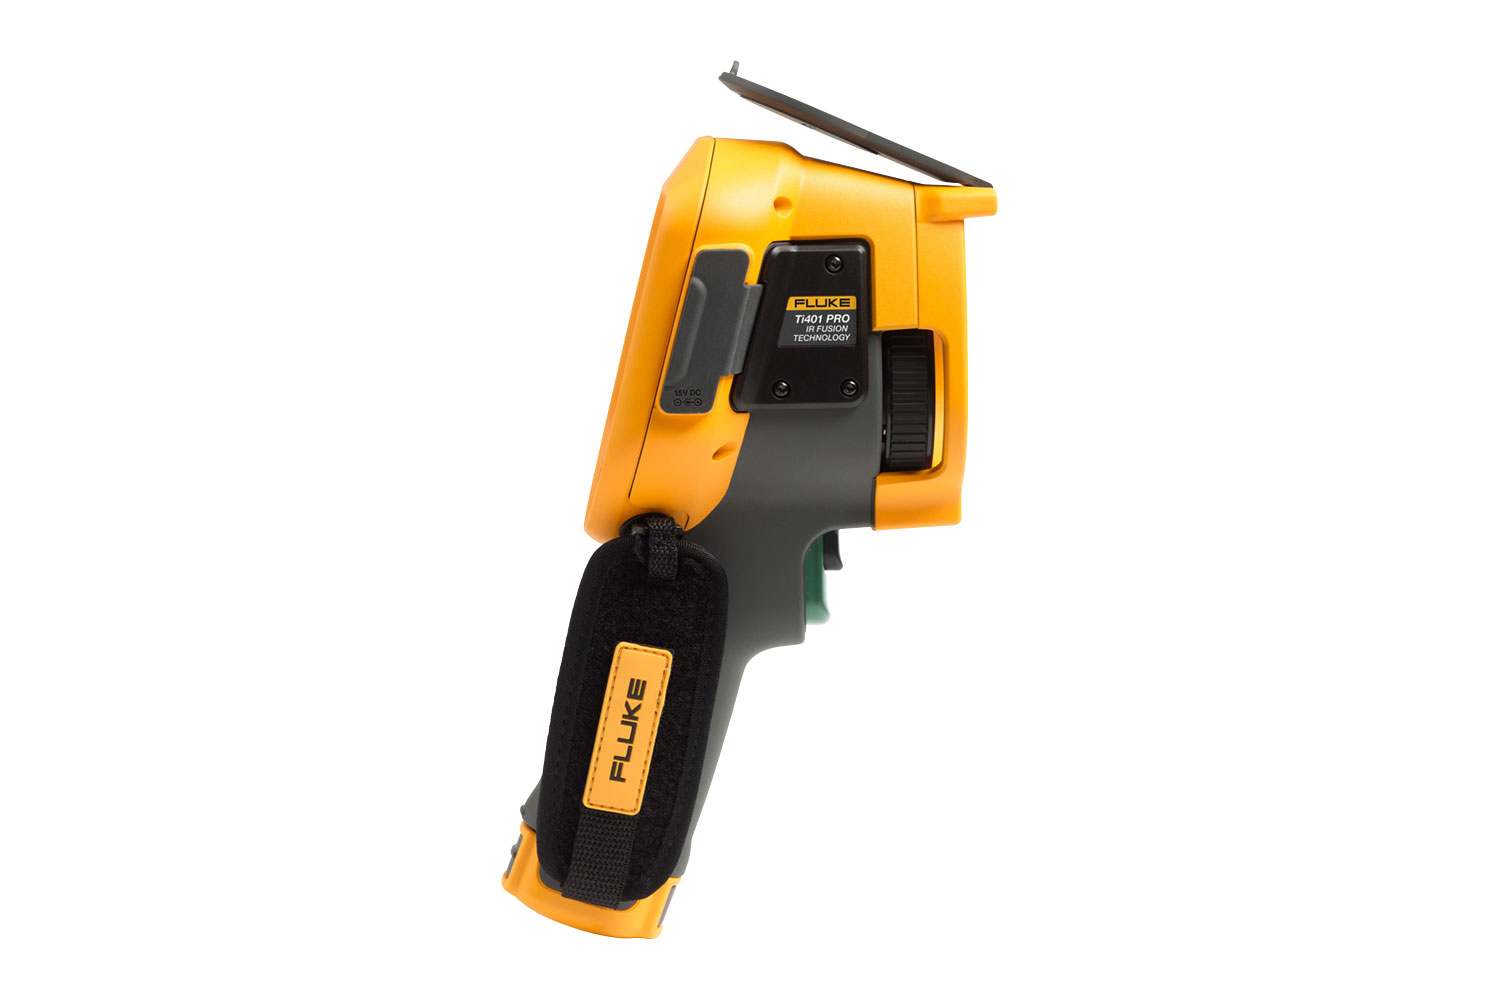 Ti401 Pro Handheld Thermal Imaging Camera Fluke